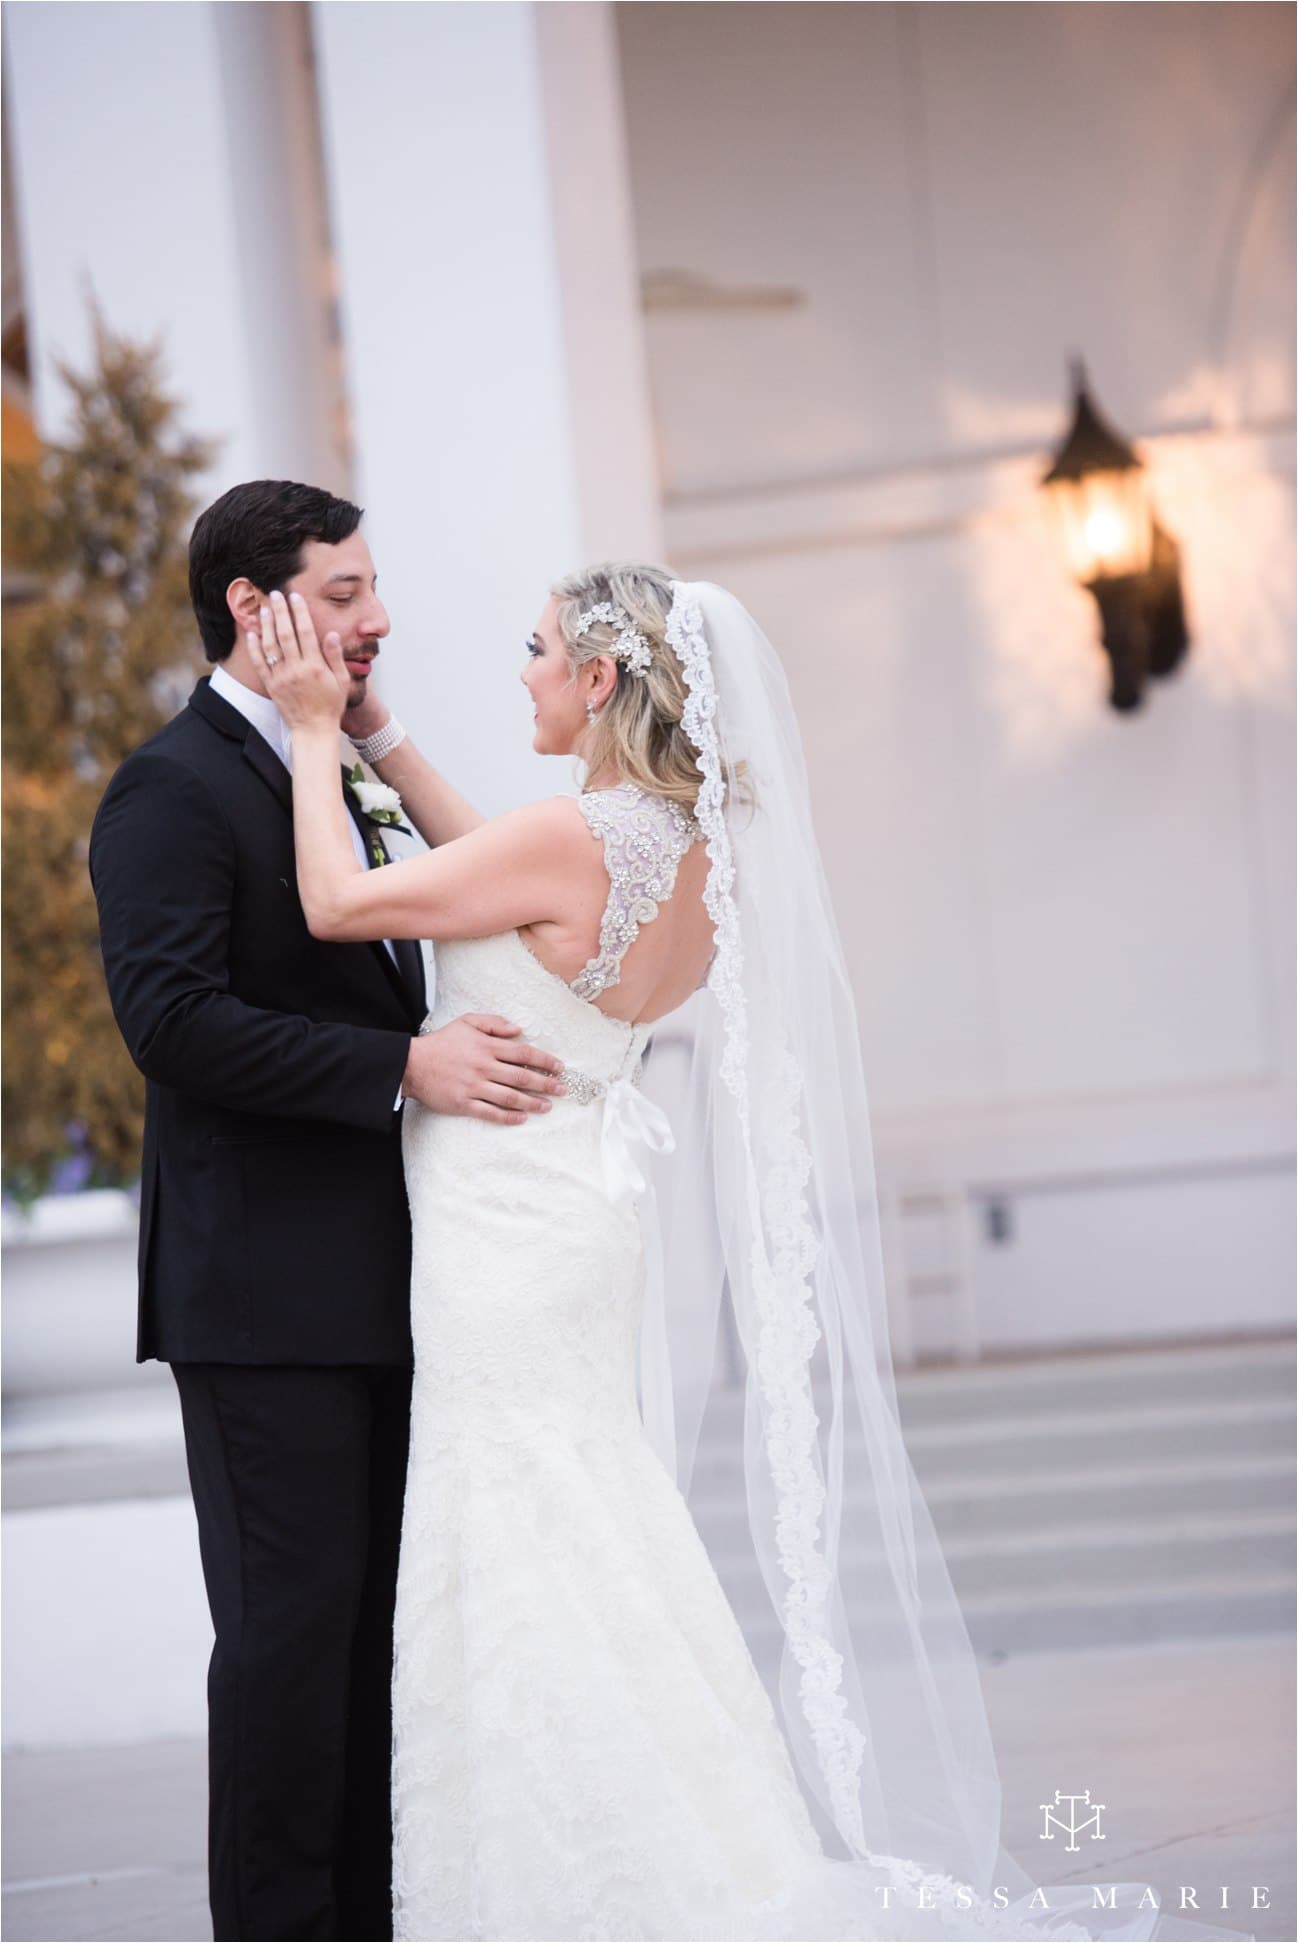 tessa_marie_brickyard_marietta_new_years_wedding_pictures_candid_emotional_wedding_portraits_0044